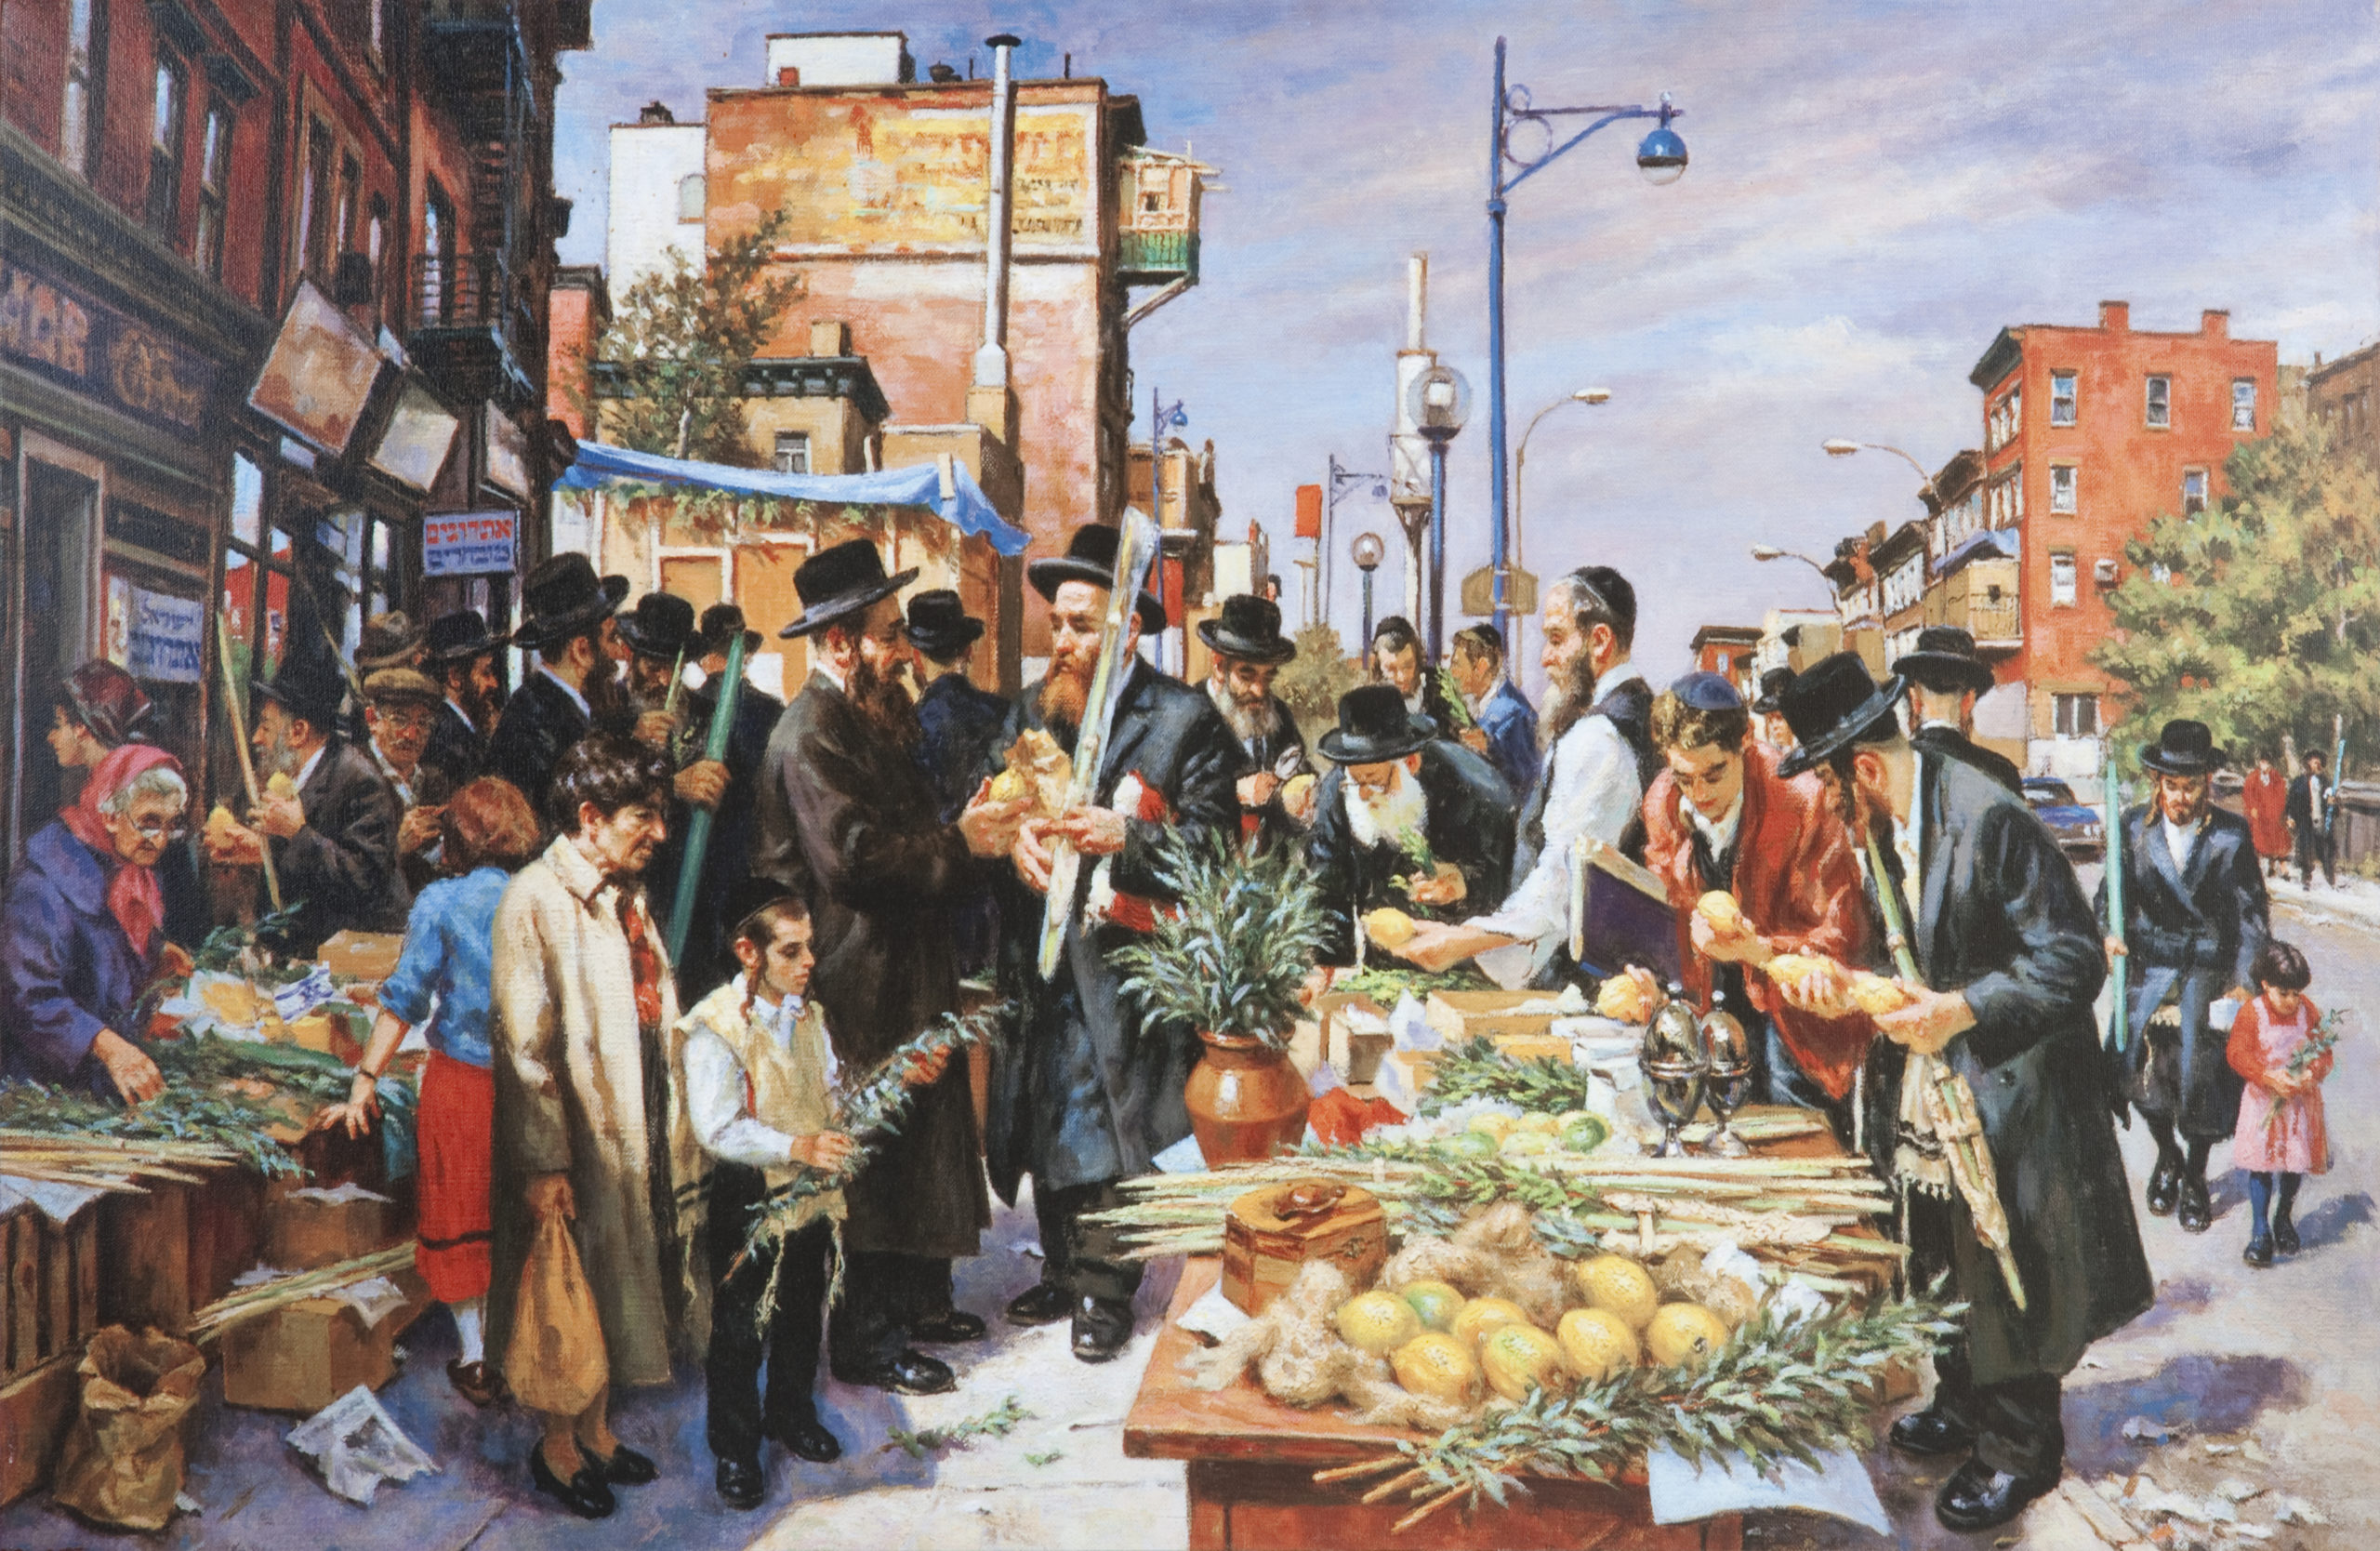 L91 Shopping for Succoth - Giclee - Lithograph - 35 x 24 - No Frame - $890